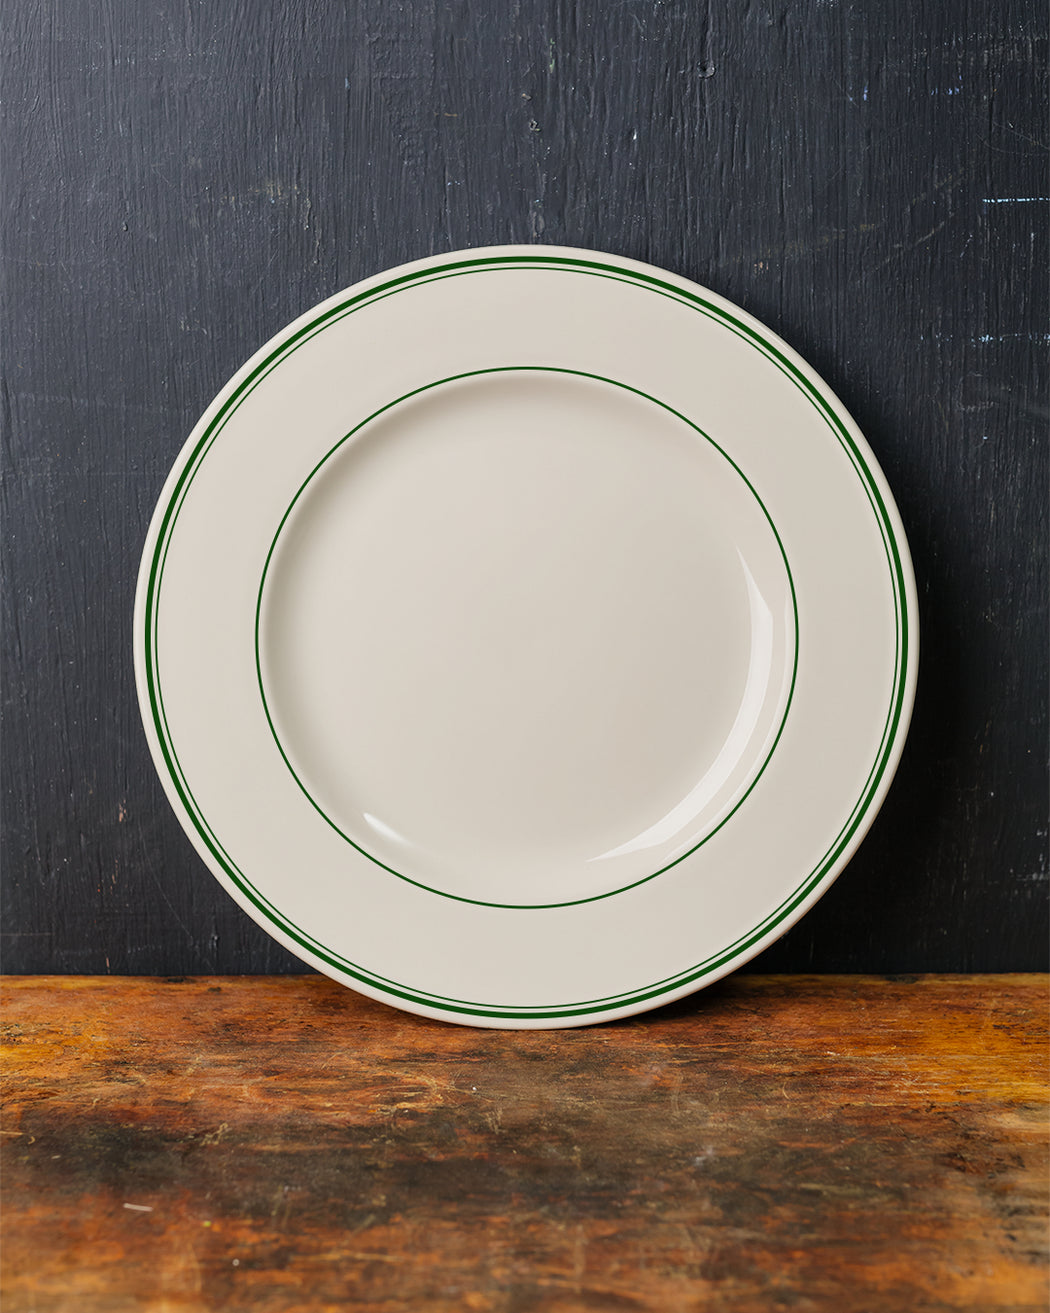 Green Band Dinner Plate - Fishs Eddy